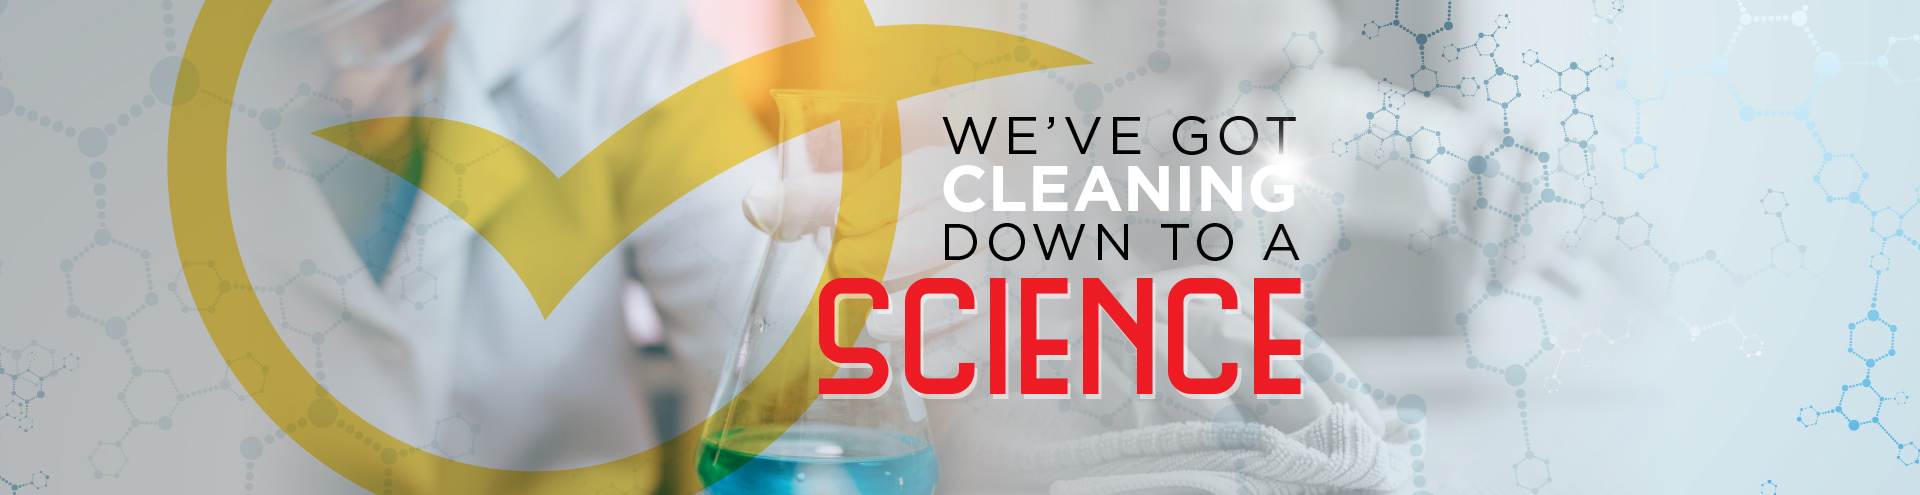 We've got cleaning down to a science